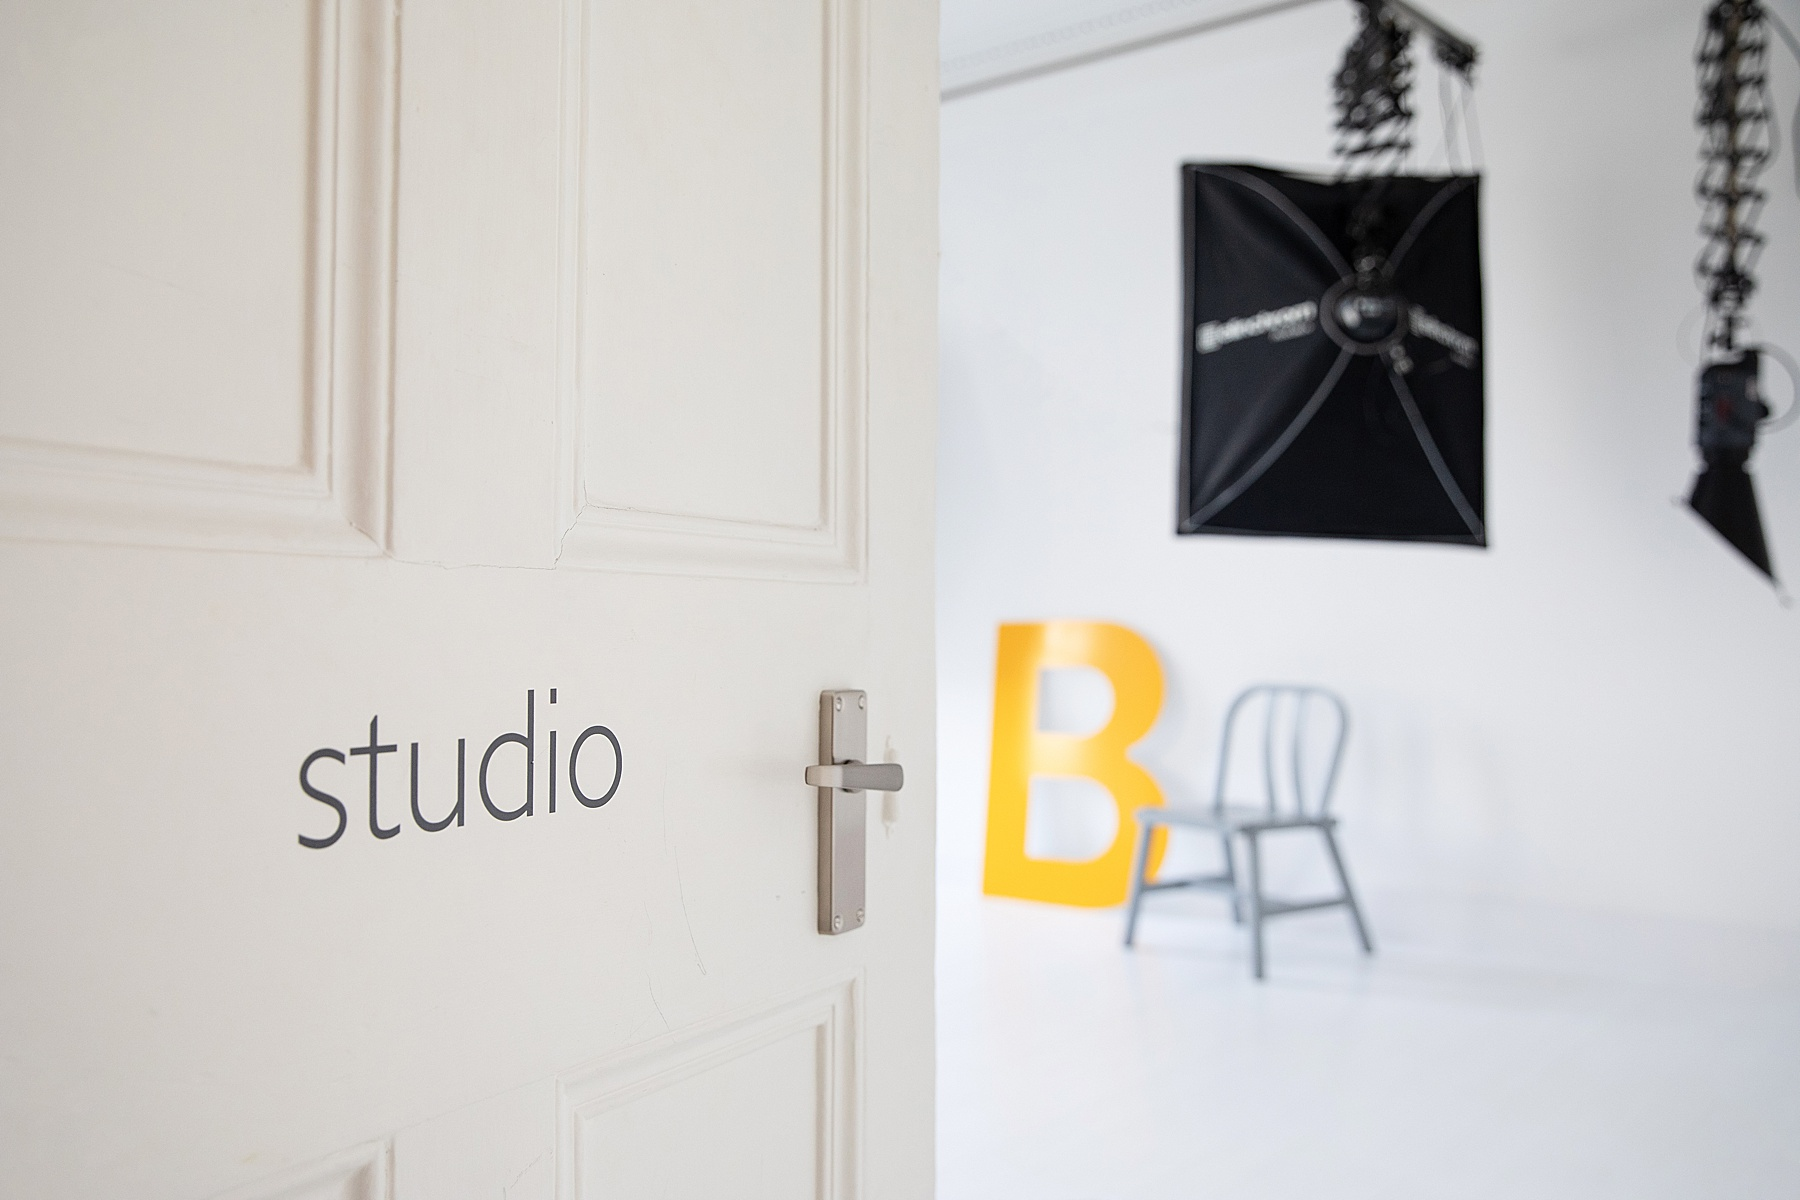 Edinburgh photography studio